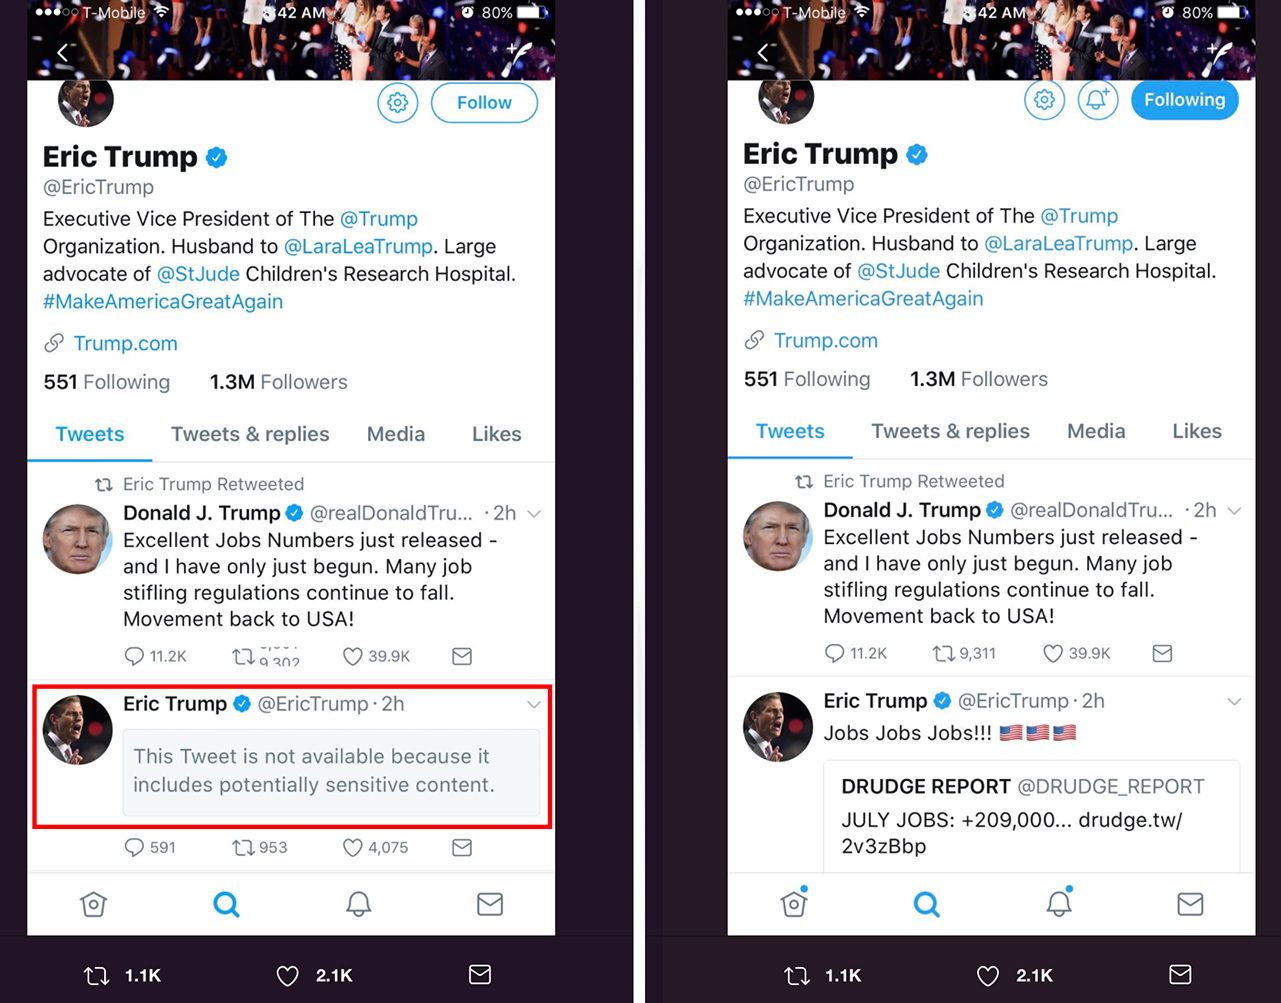 Breaking: Twitter Censors Eric Trump's Drudge Tweet Showing Great American Job Numbers